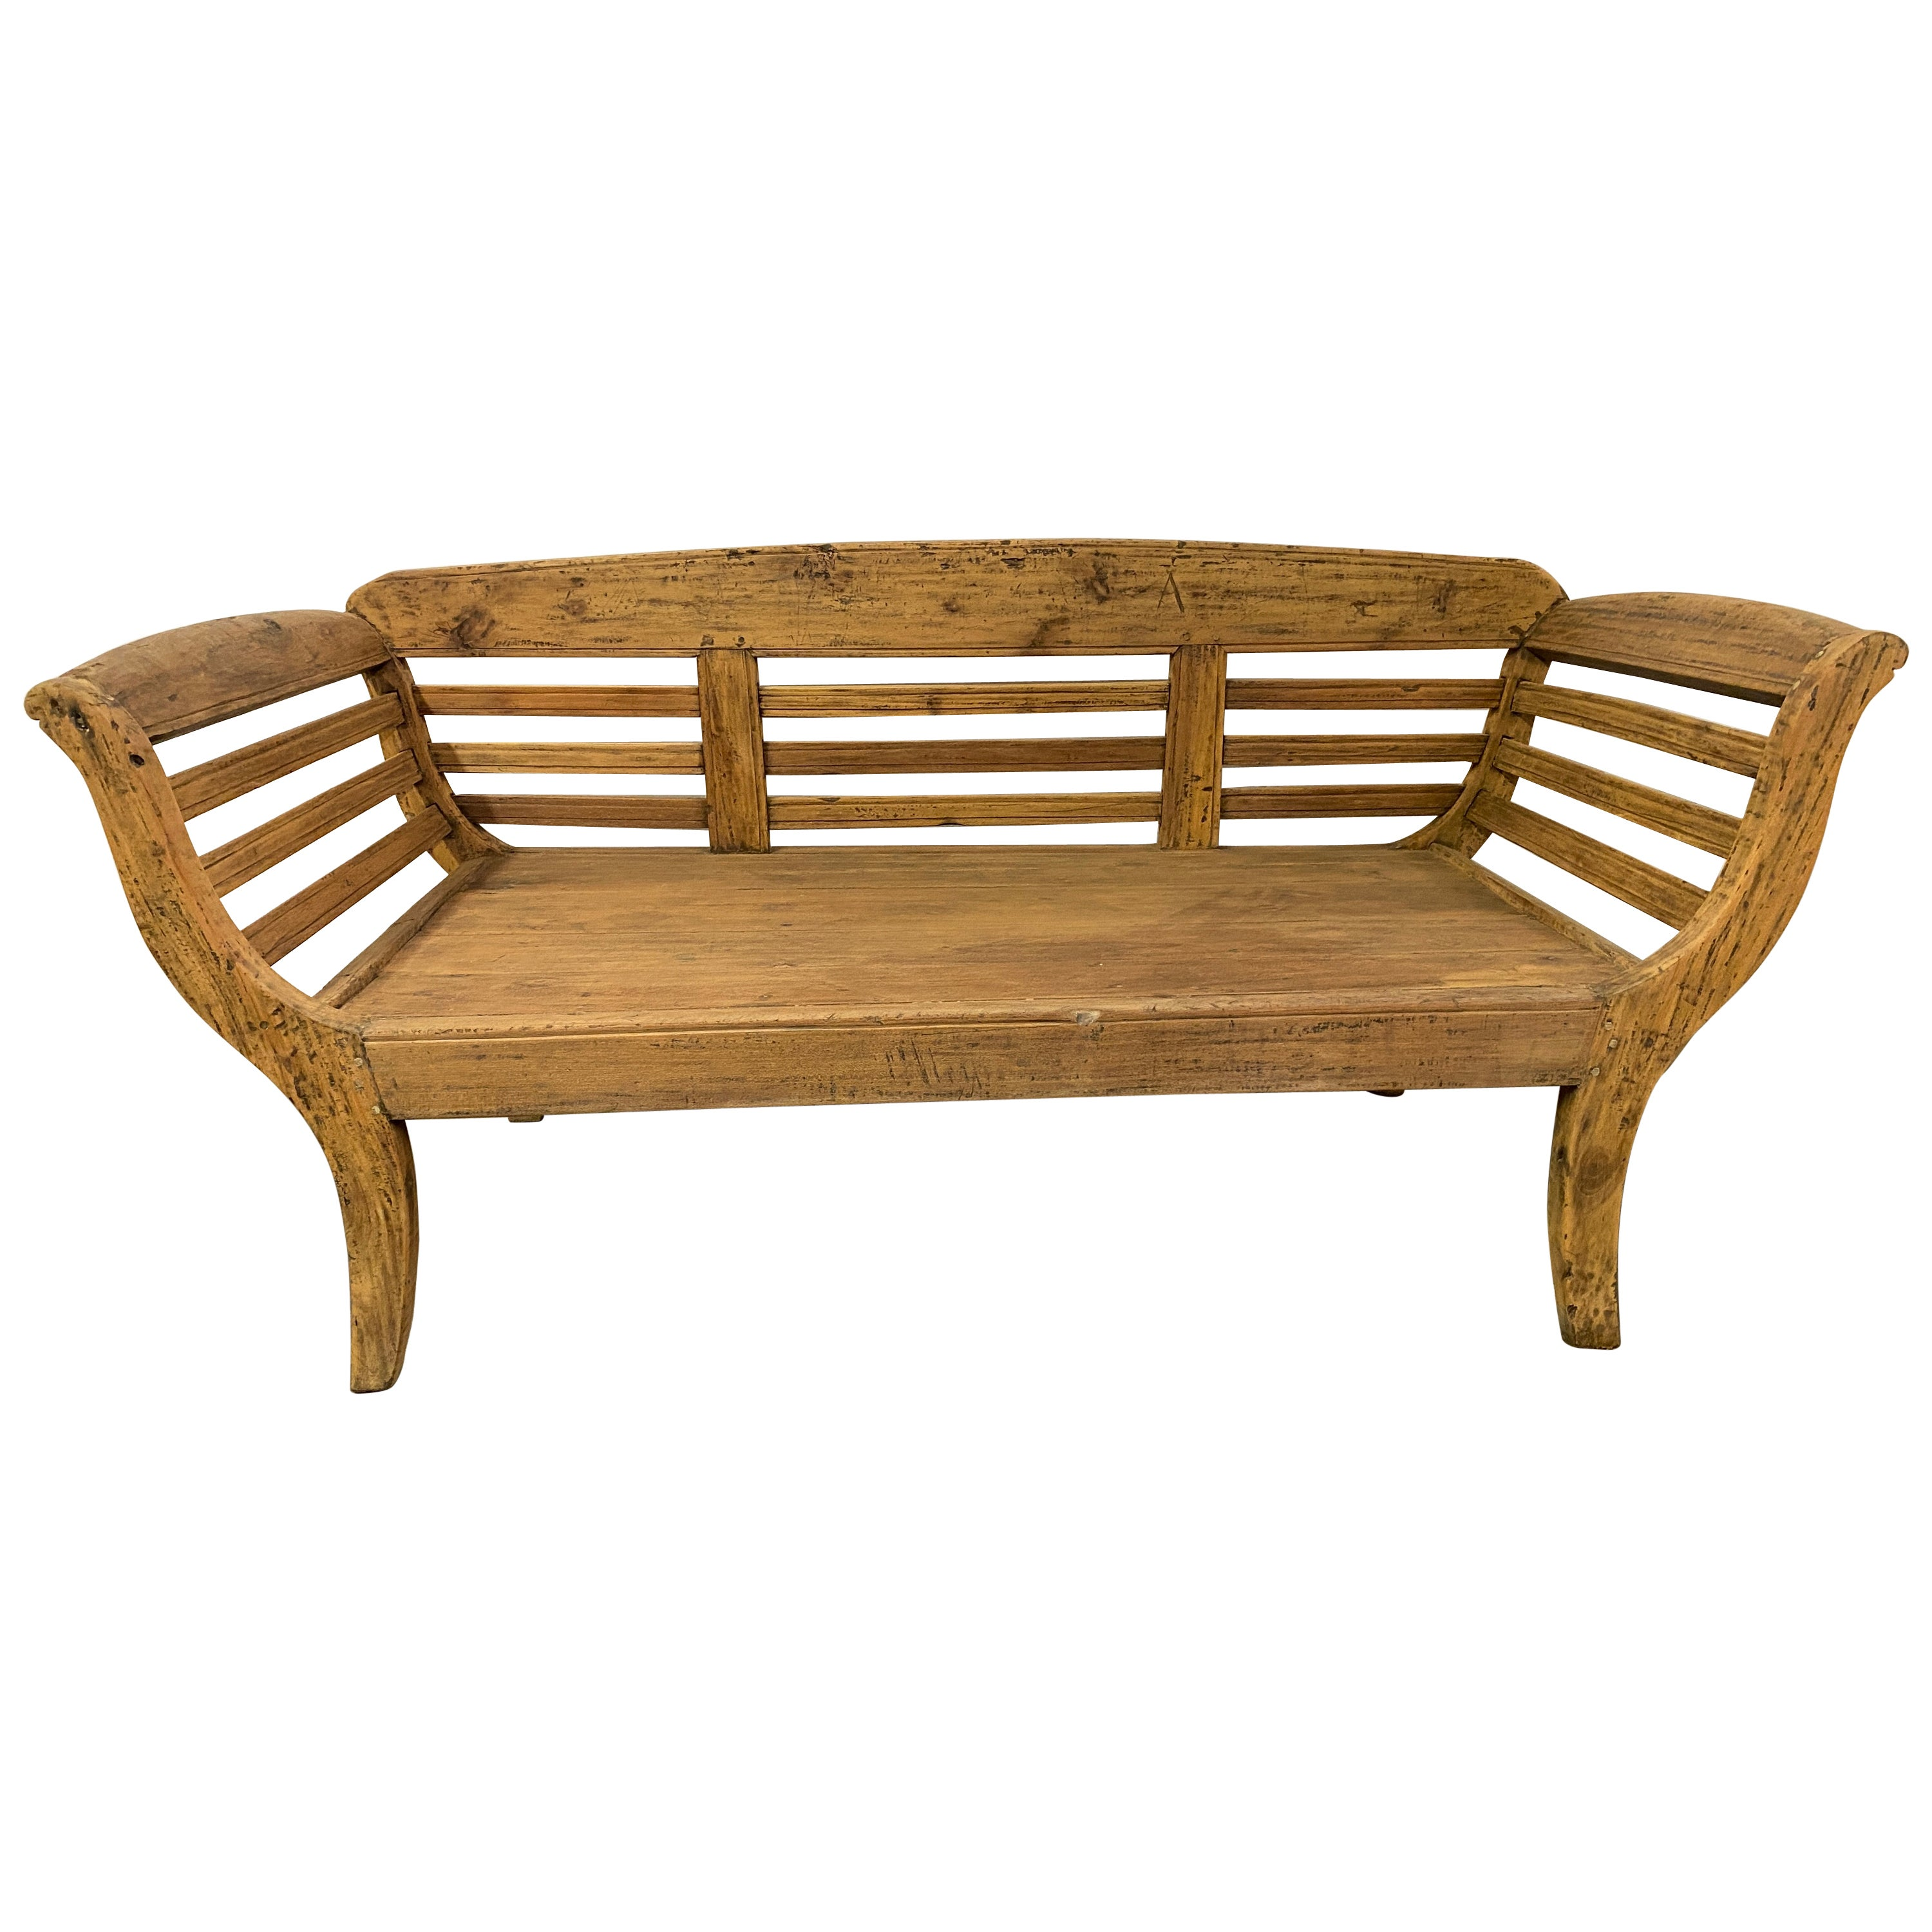 Antique Teak Settee or Bench with Slatted Back, Arms and Cushion